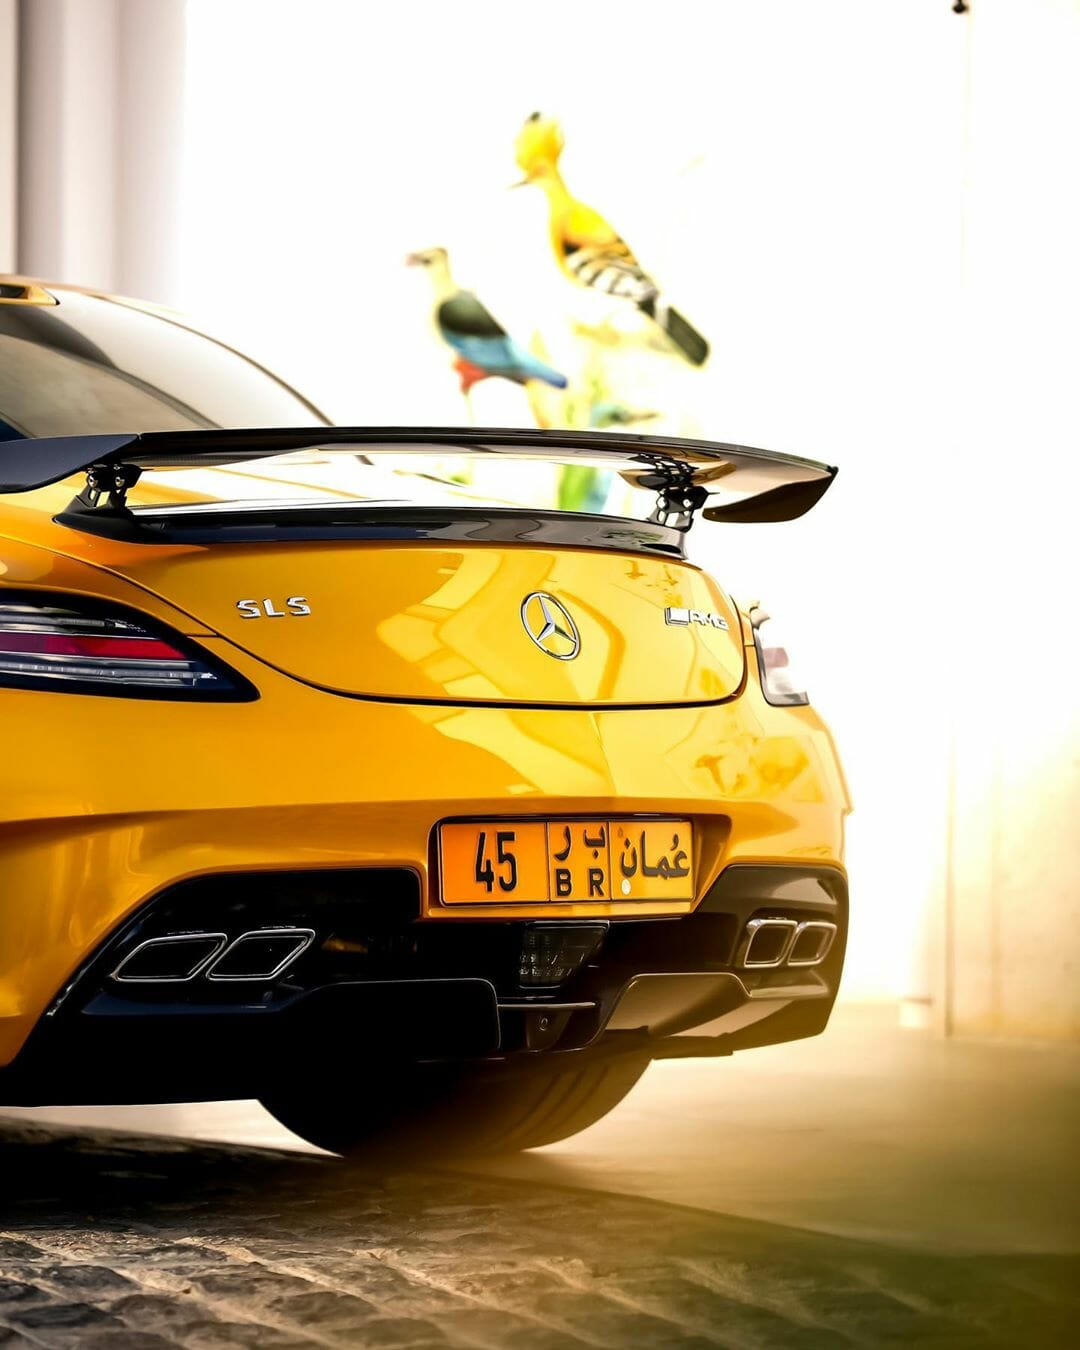 Mercedes-Benz SLS AMG Black Series by @k_cars Picture 7